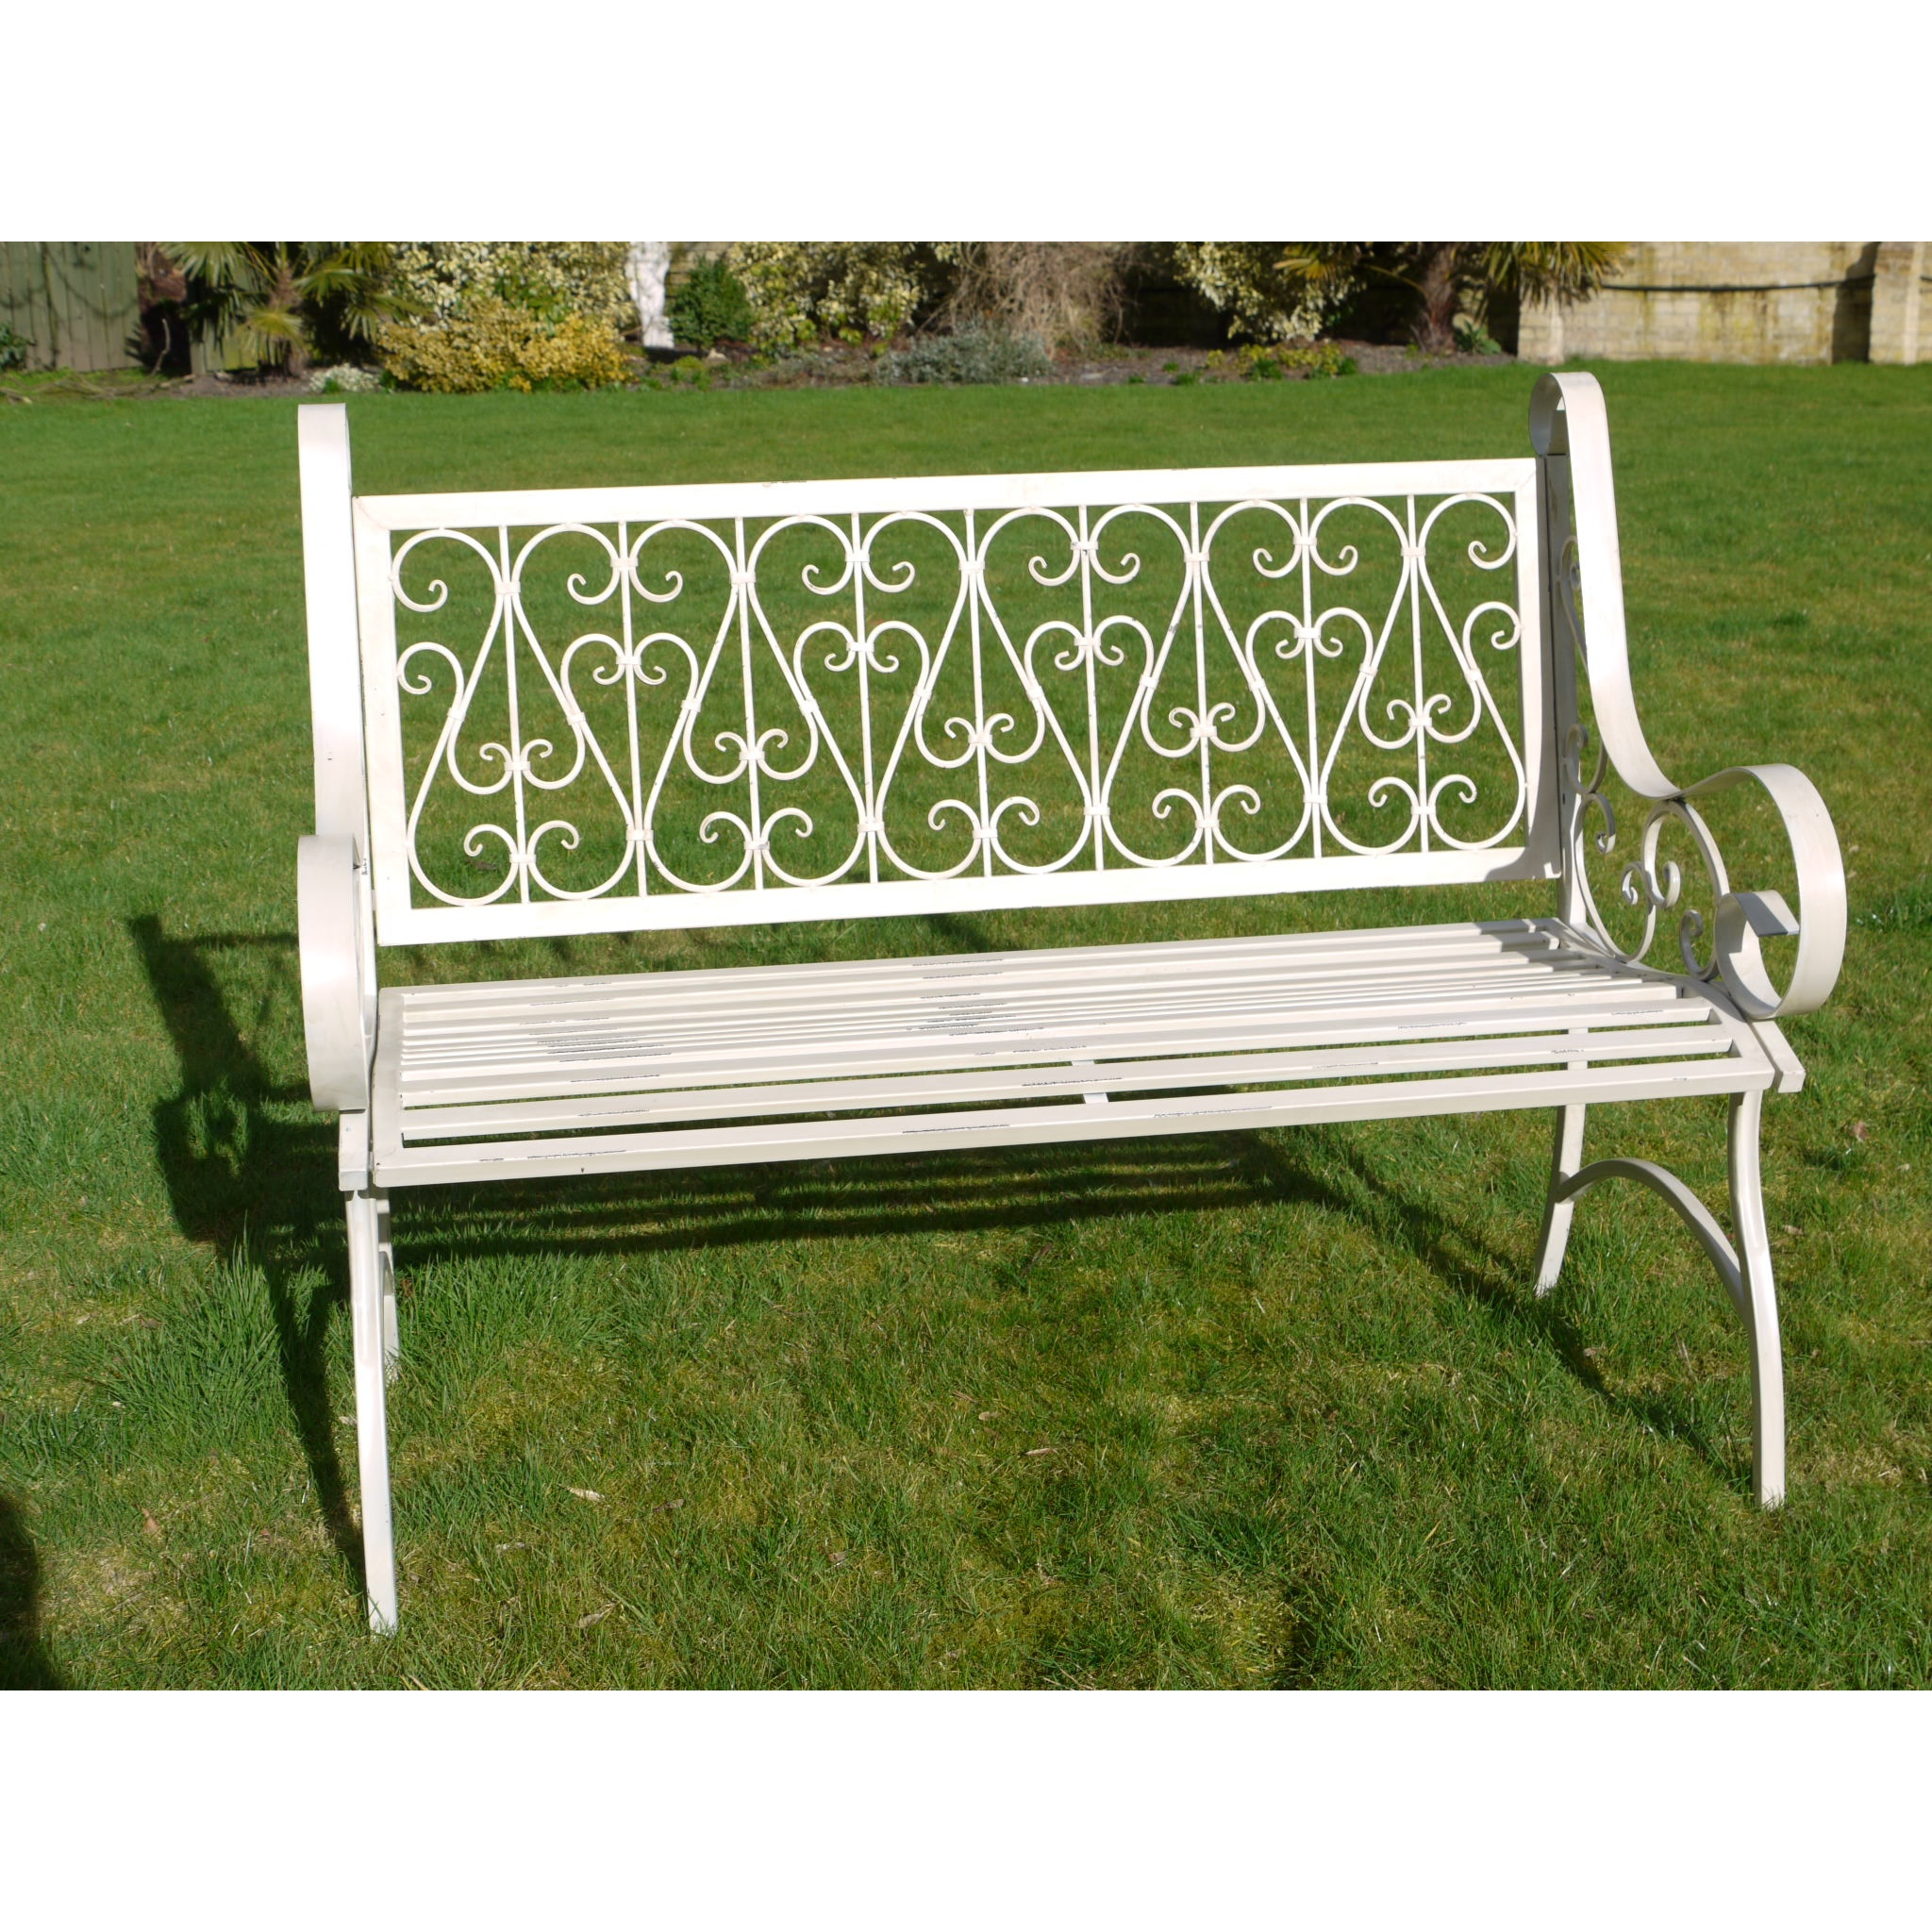 White ornate metal garden bench swanky interiors Garden benches metal